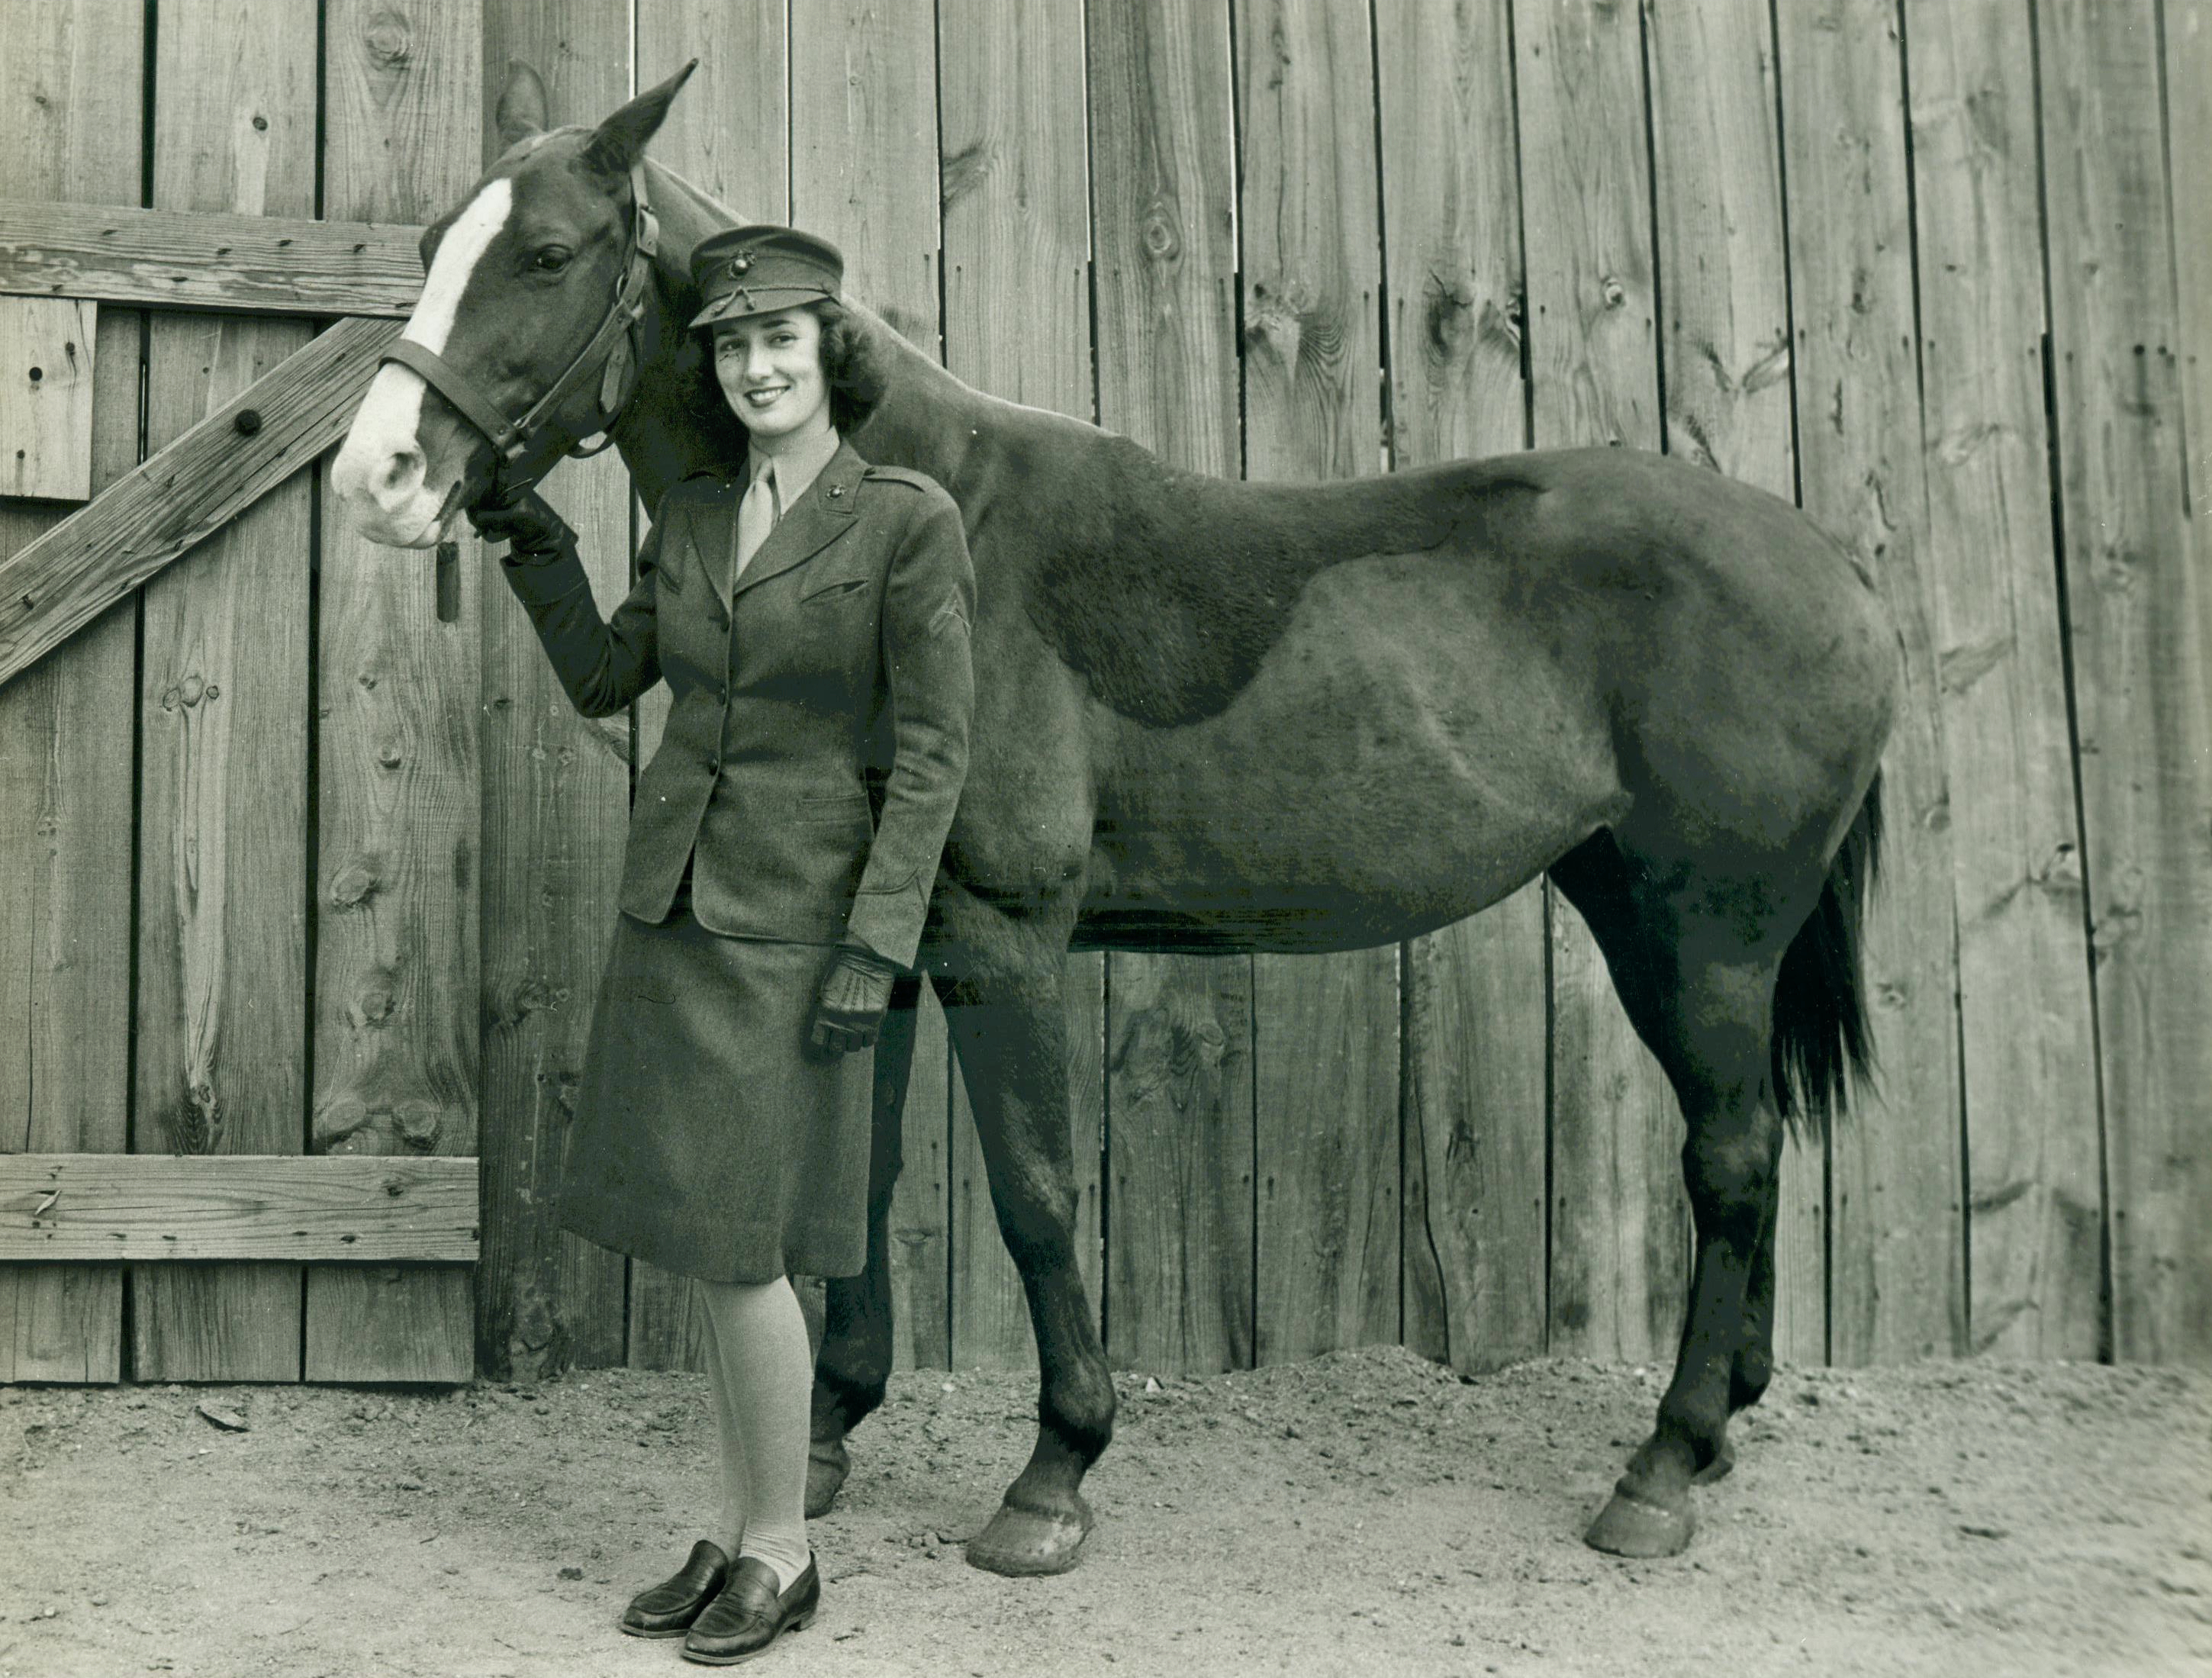 Woman Marine at Quantico Stables